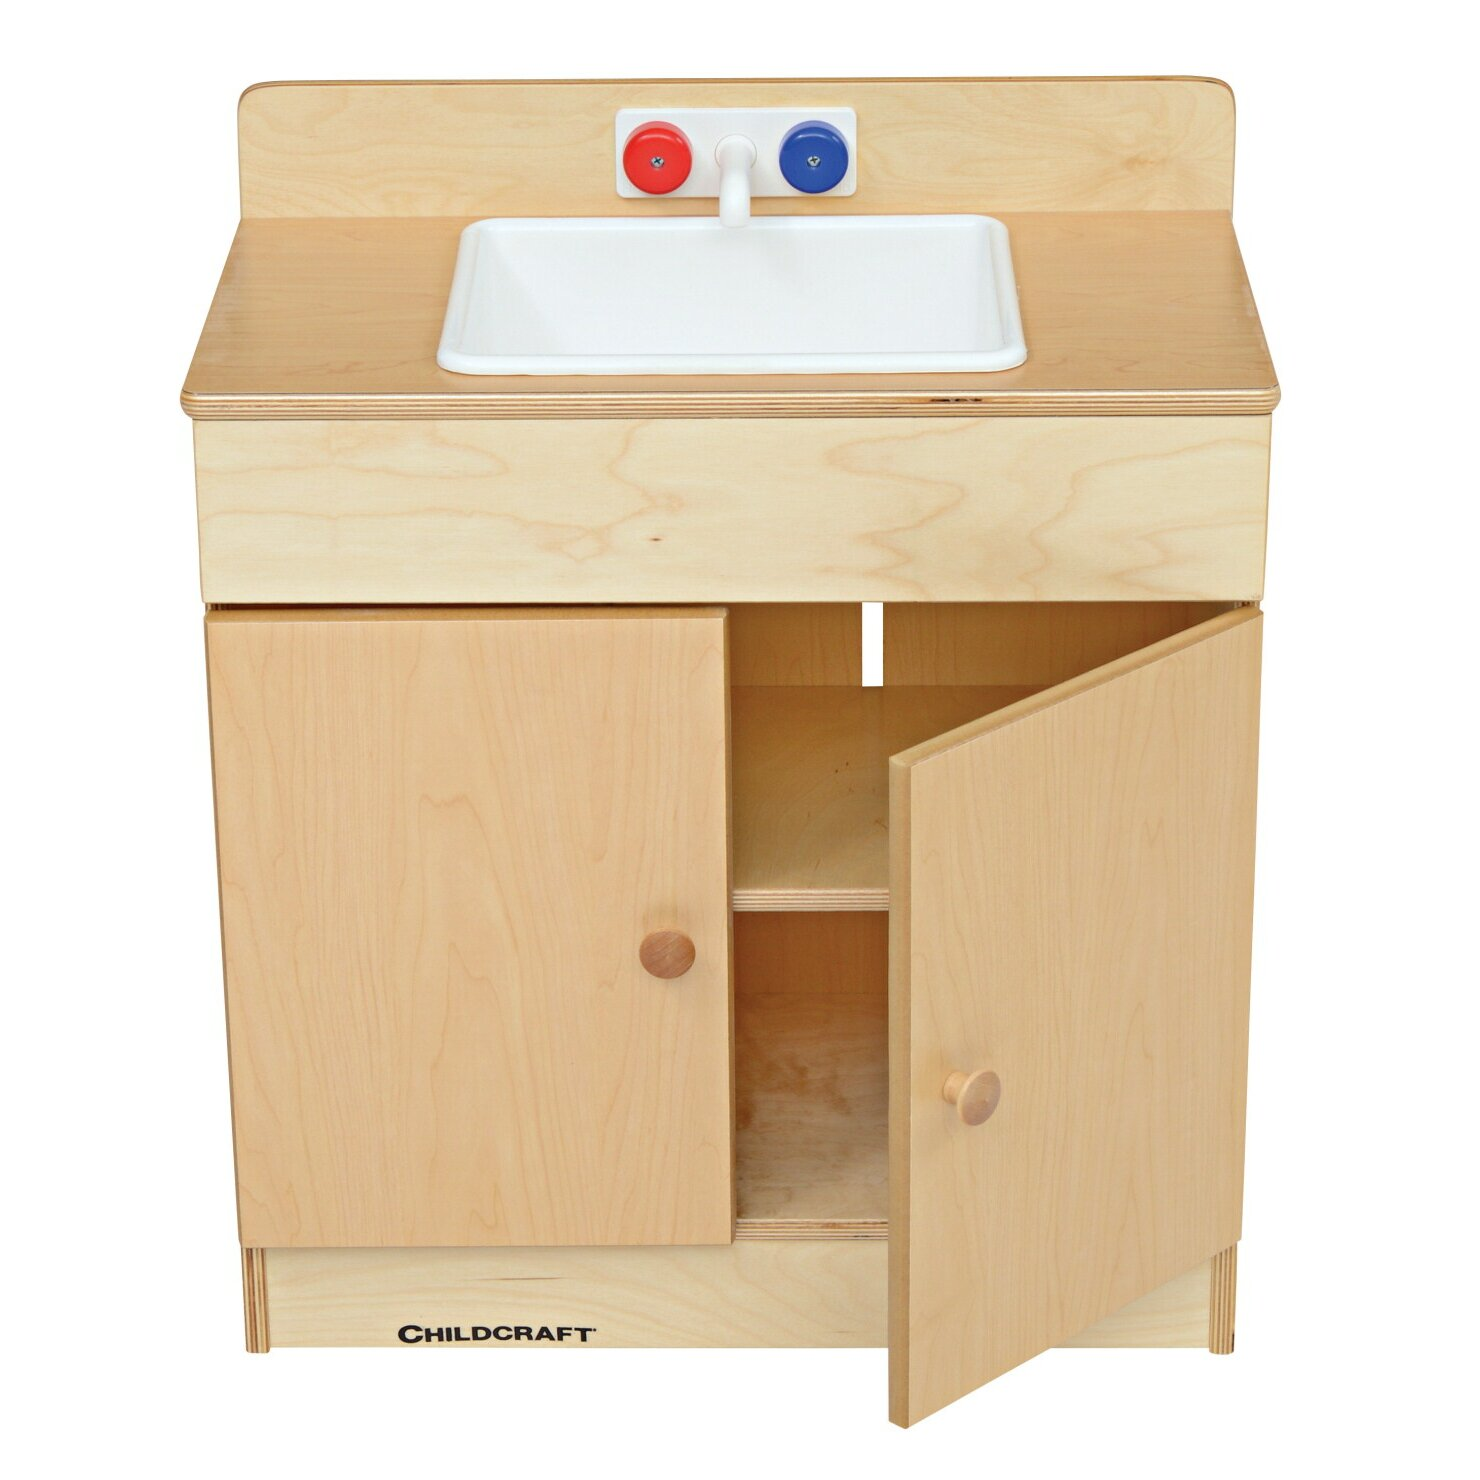 Childcraft traditional play sink reviews wayfair for Child craft play kitchen